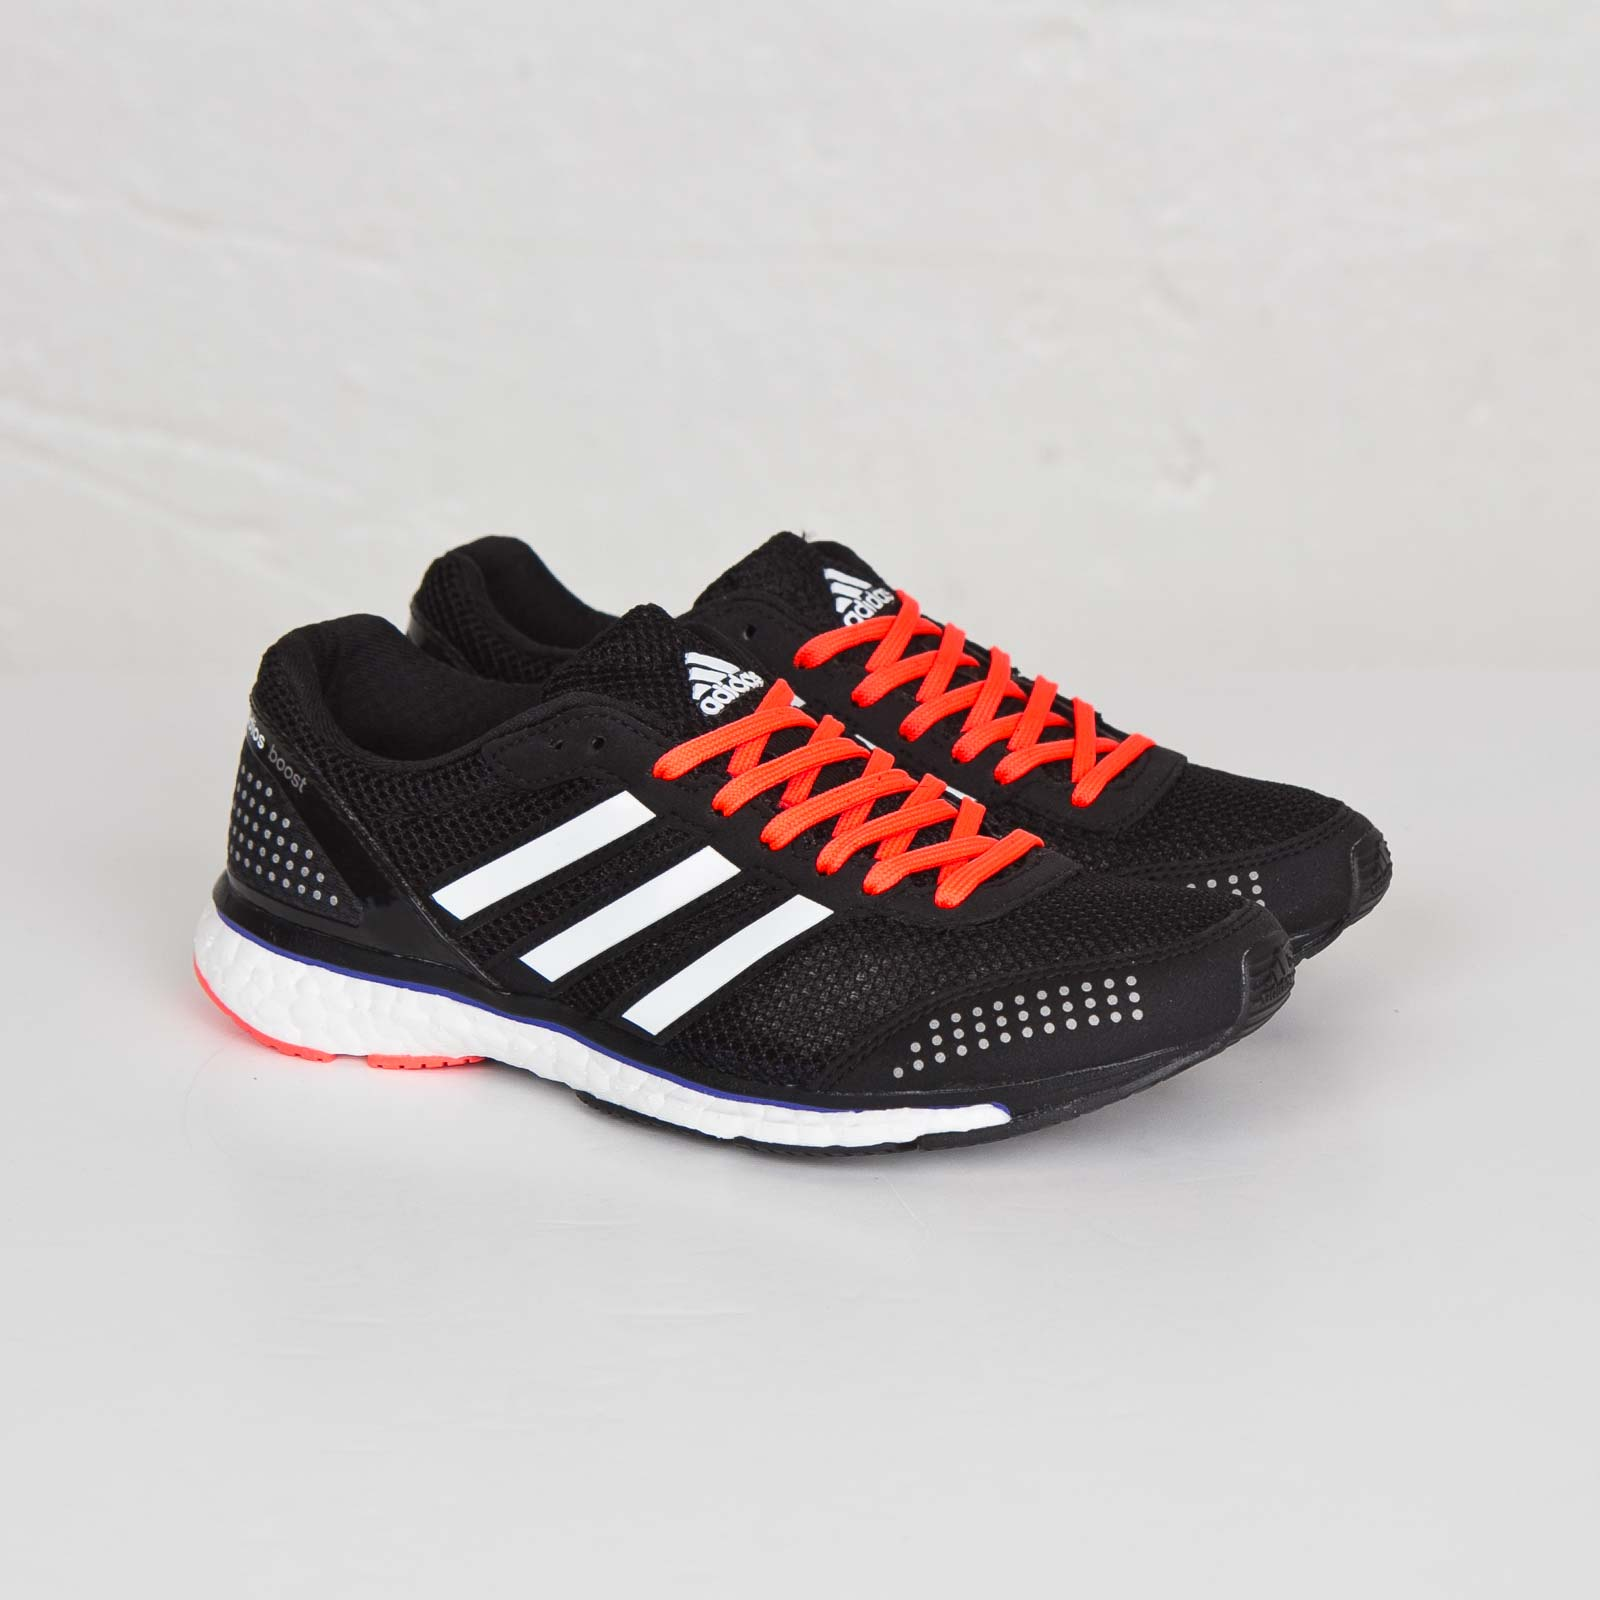 The adidas adizero Adios Boost is Now Available | Complex